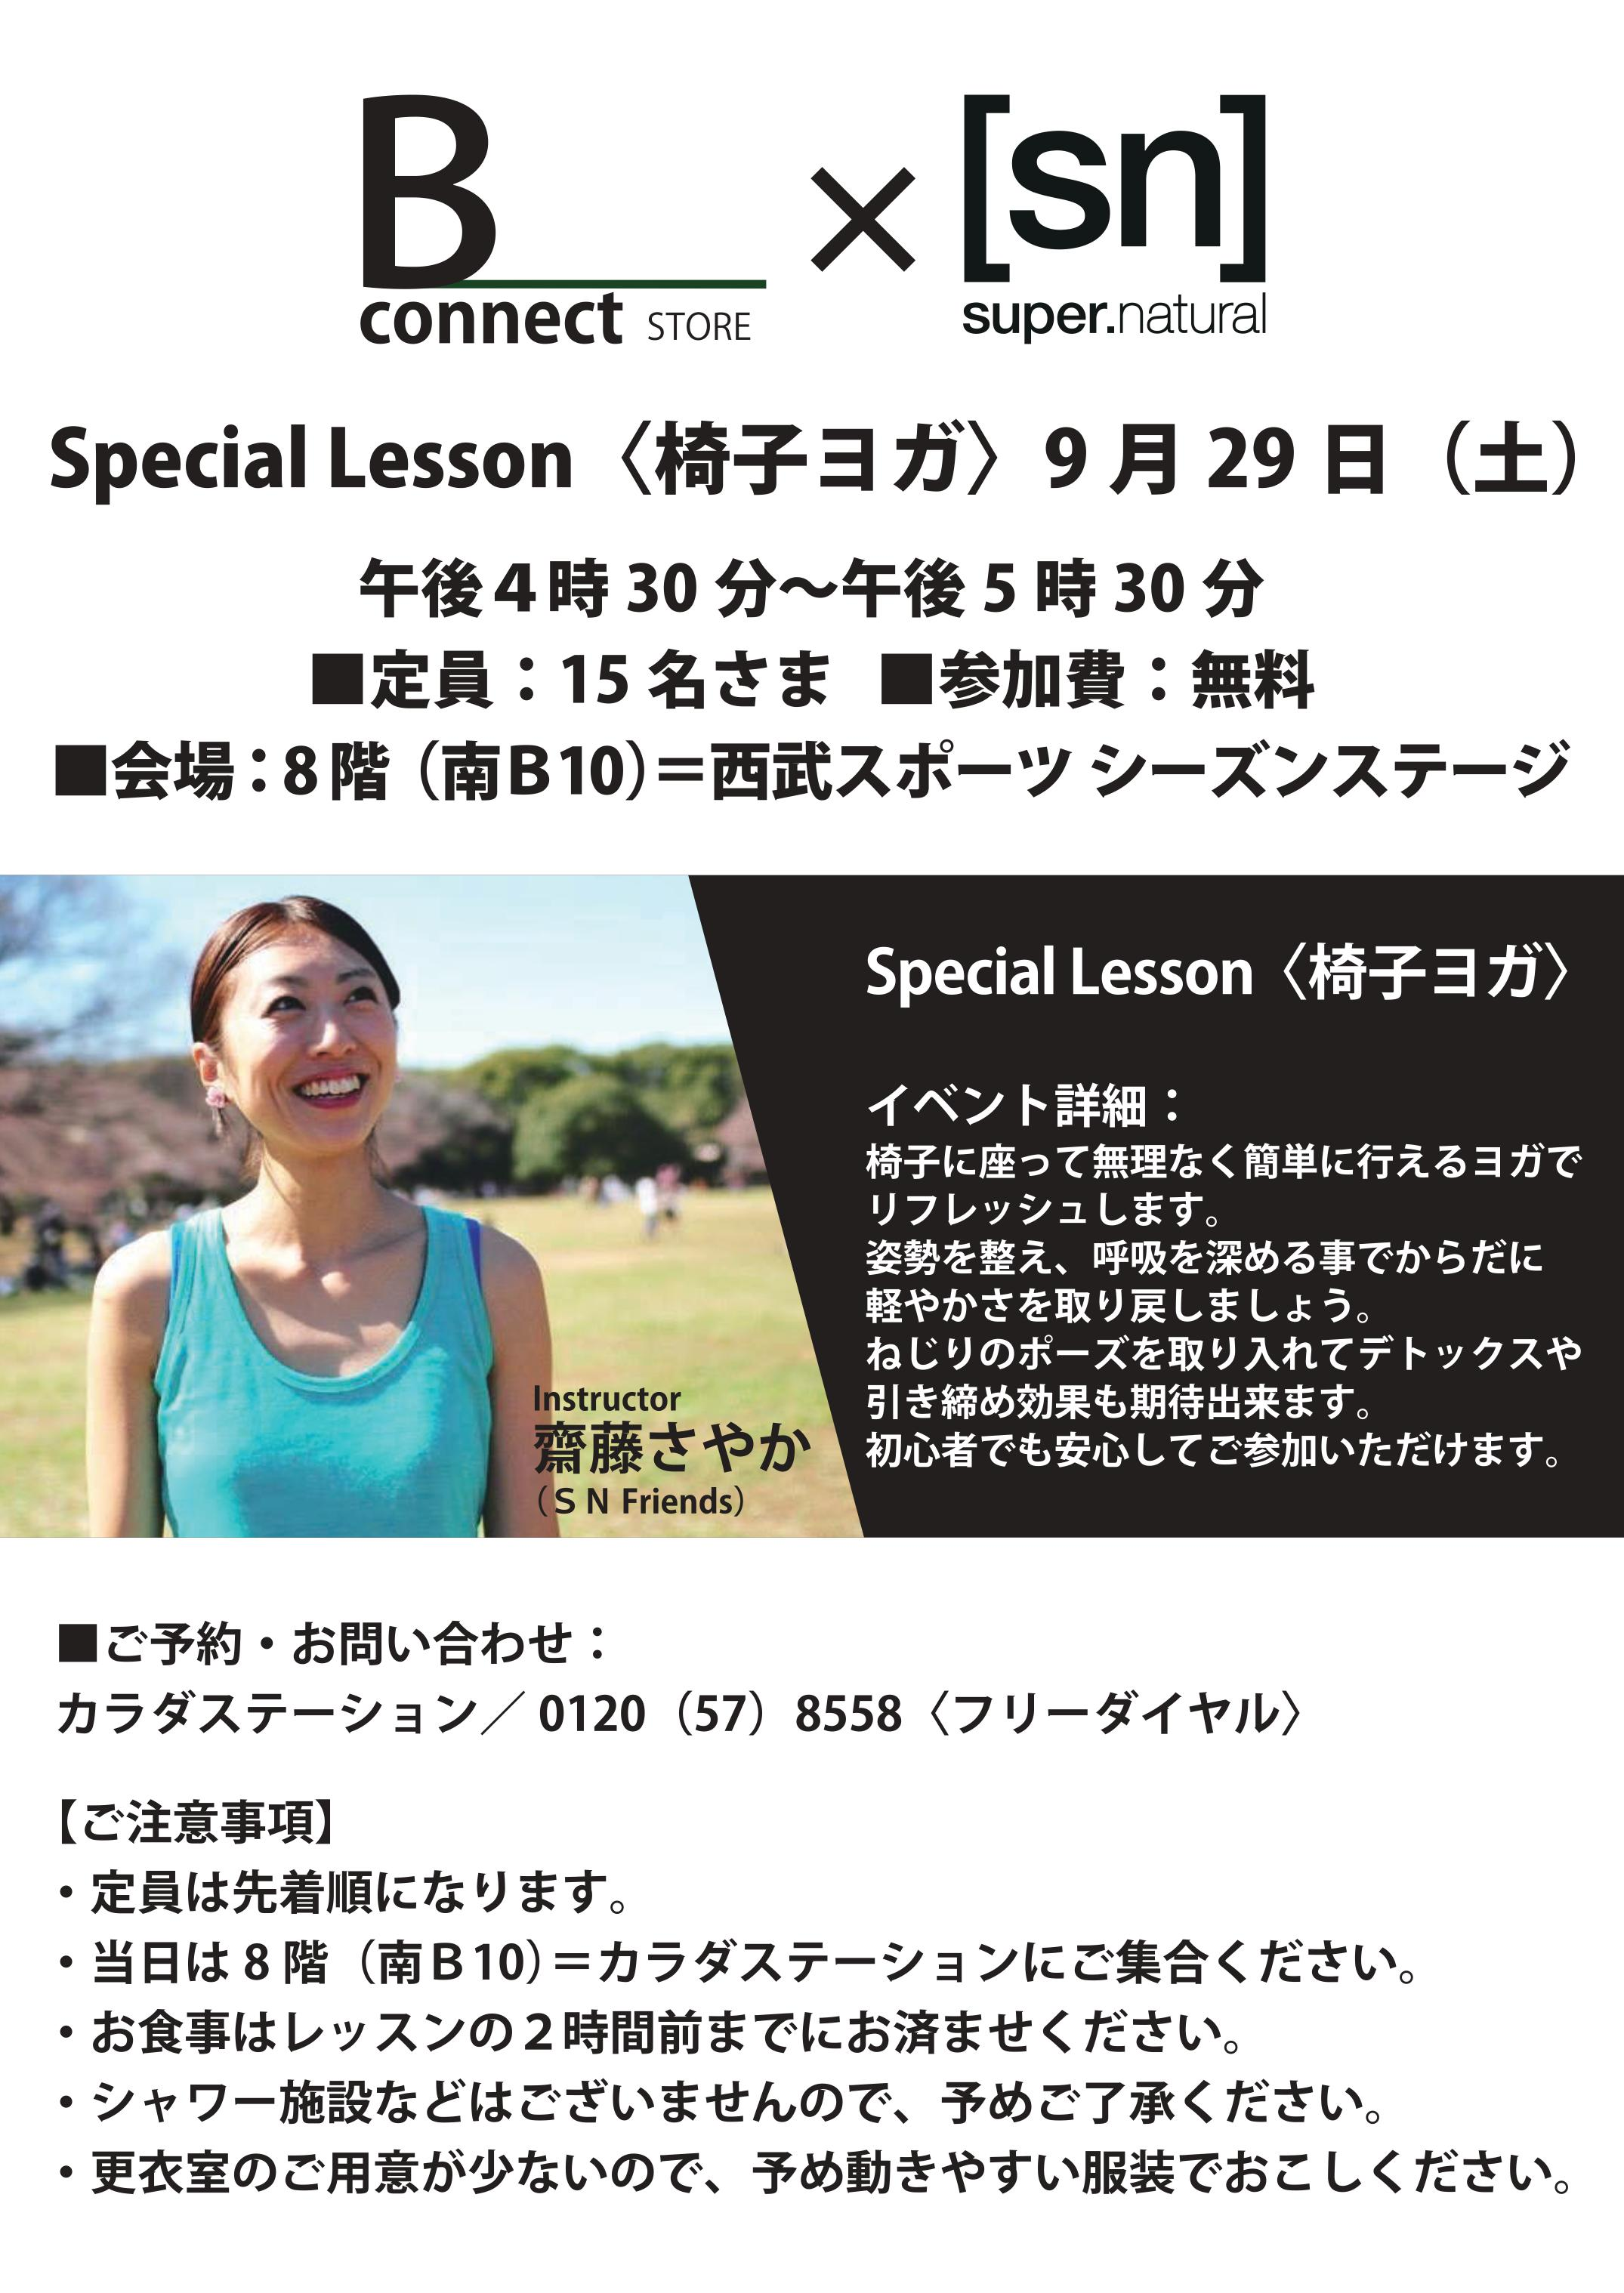 9.29 B-connect × [sn] - Special Lesson